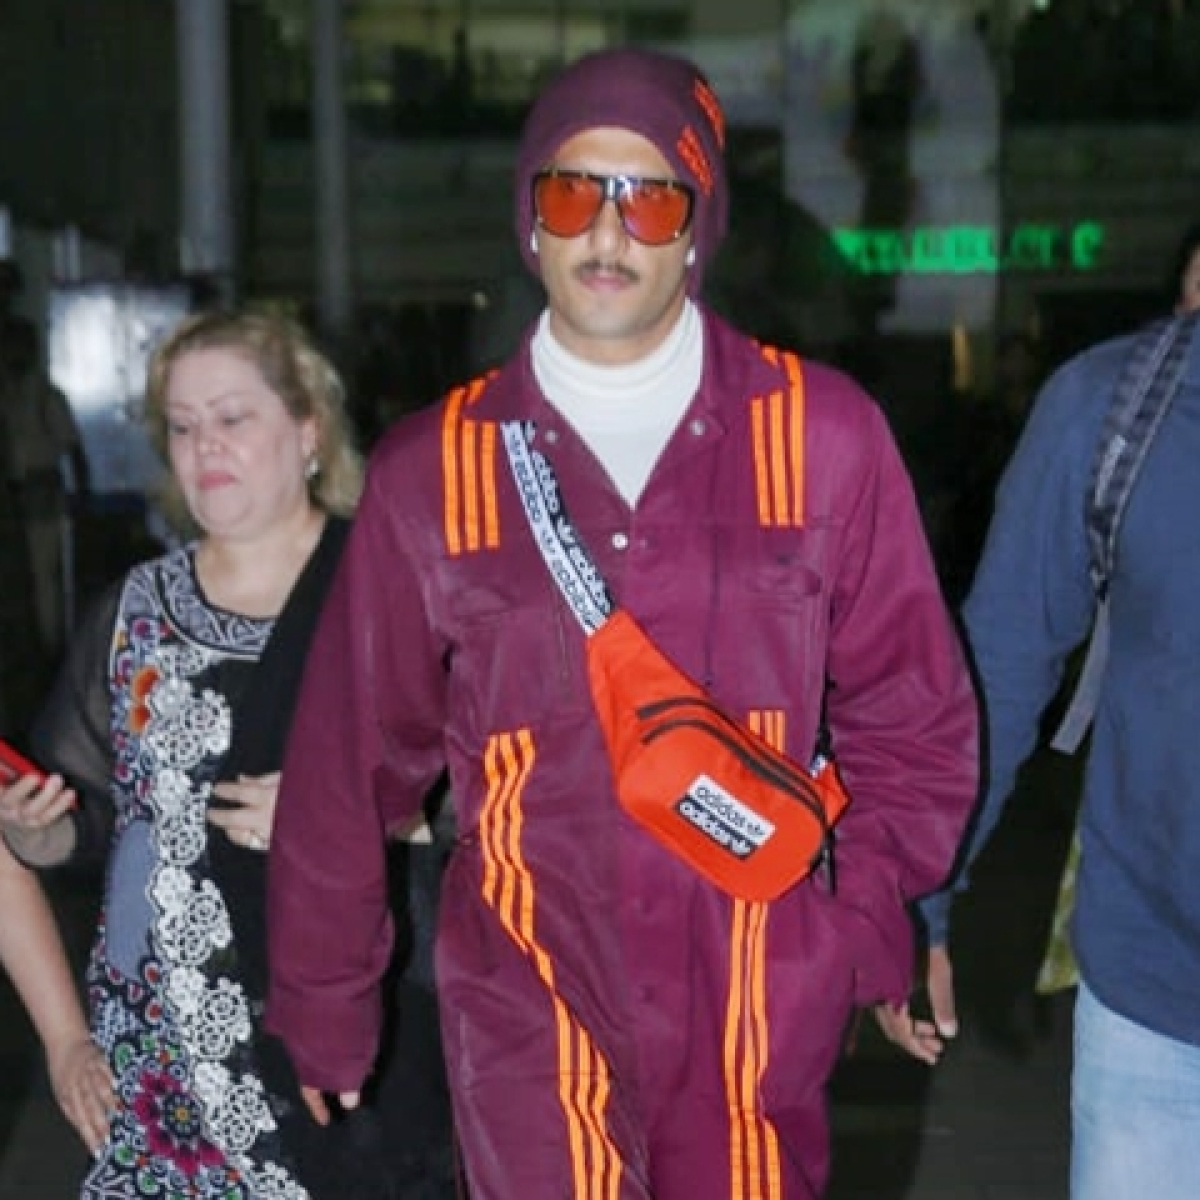 Ranveer Singh's airport look featuring Beyonce's adidas x IVY PARK collection costs just Rs 32K